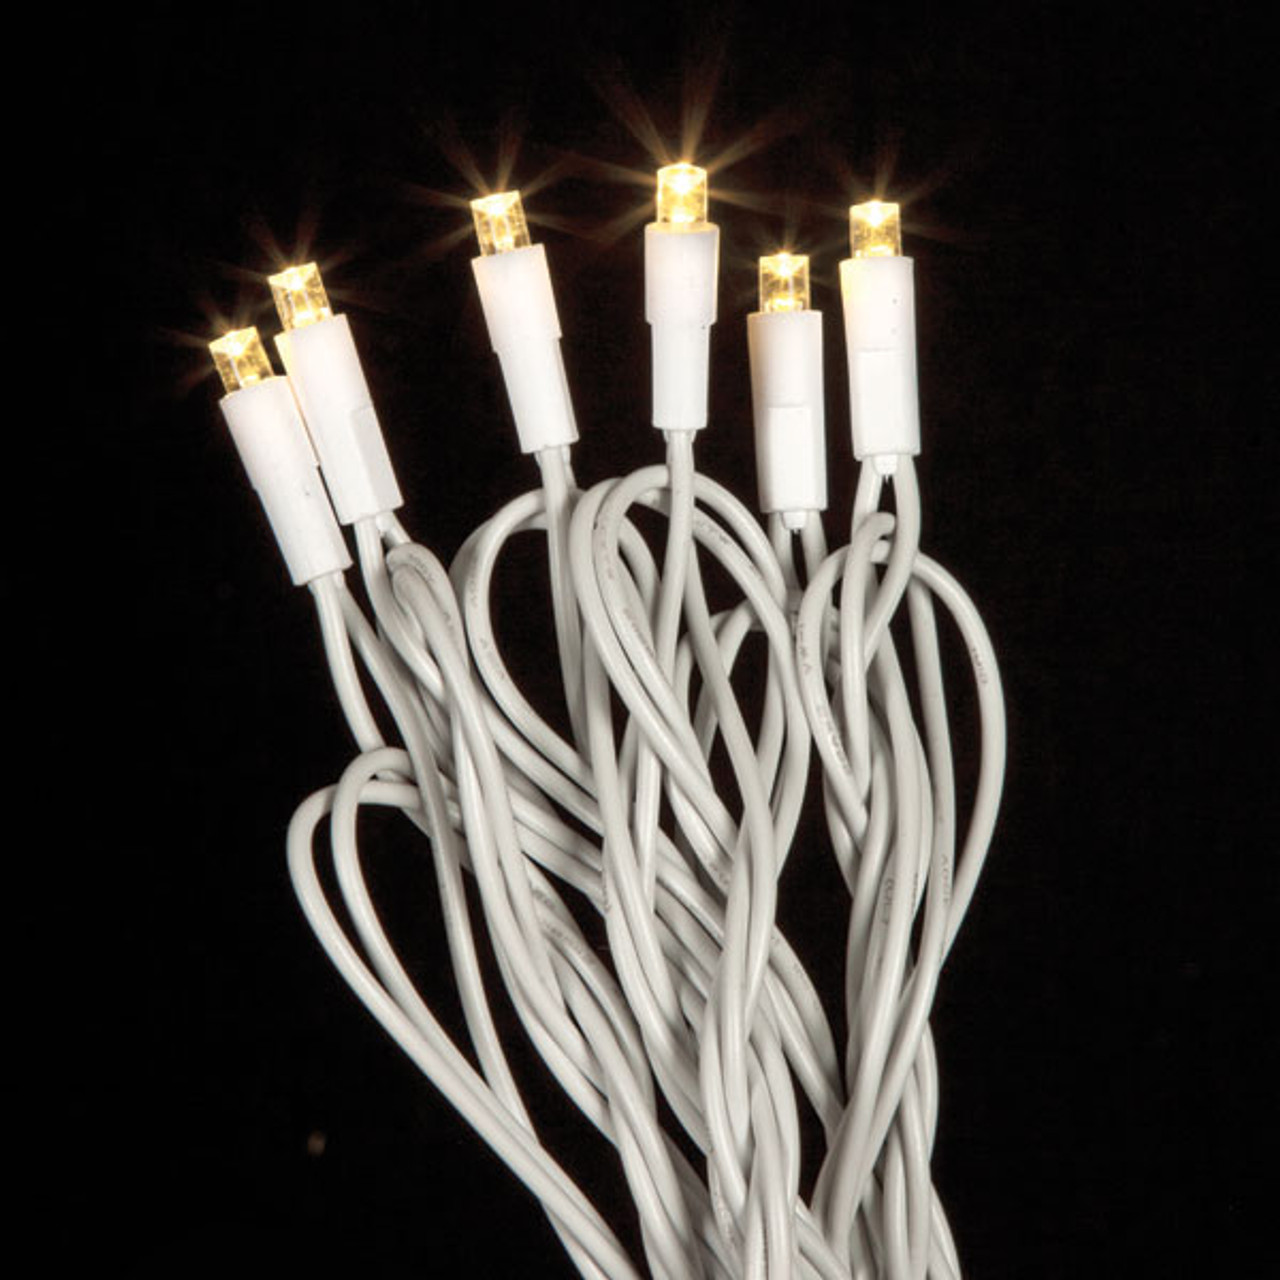 5mm Warm White LED Light Strand - Brown Wire   Wholesale LED Lights